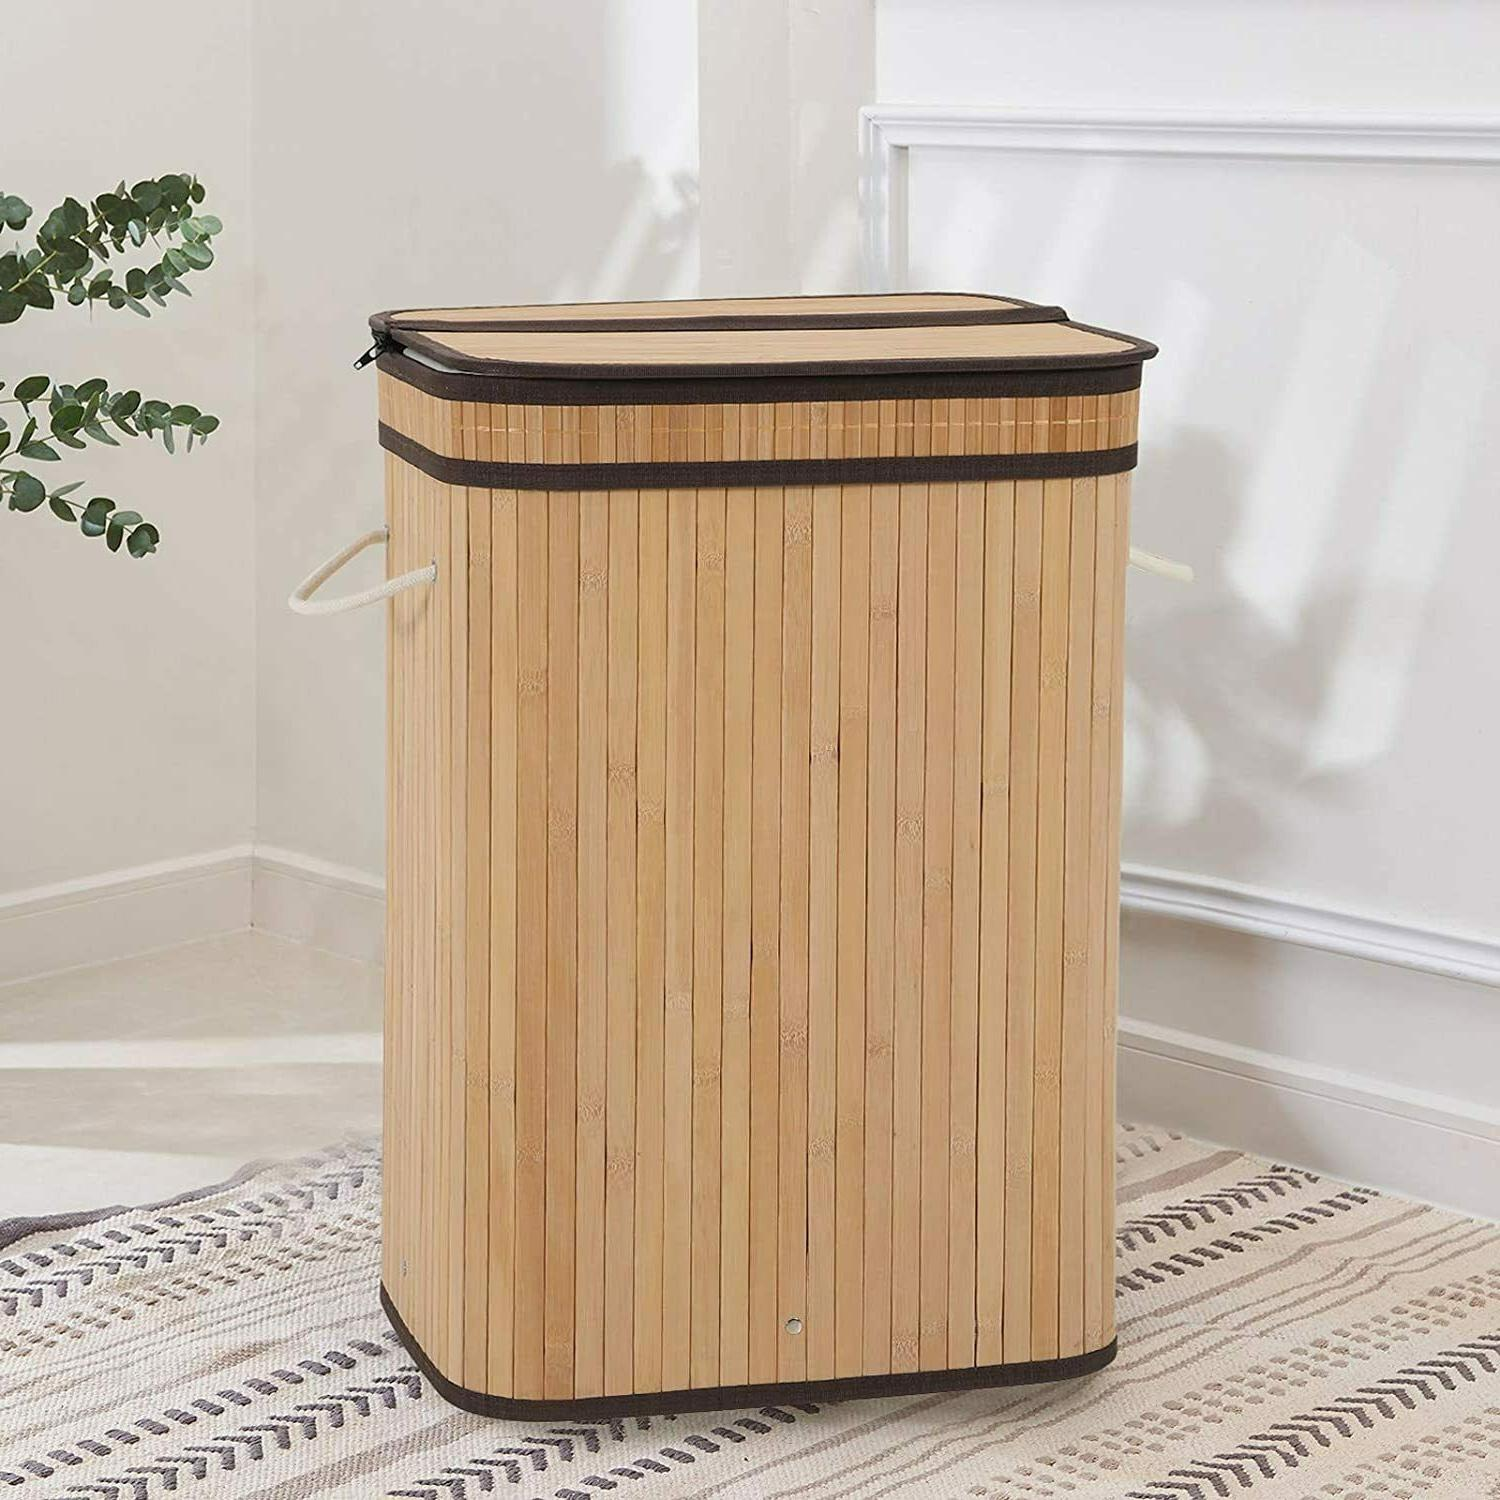 Laundry with Lid 72L Basket Removable Liner